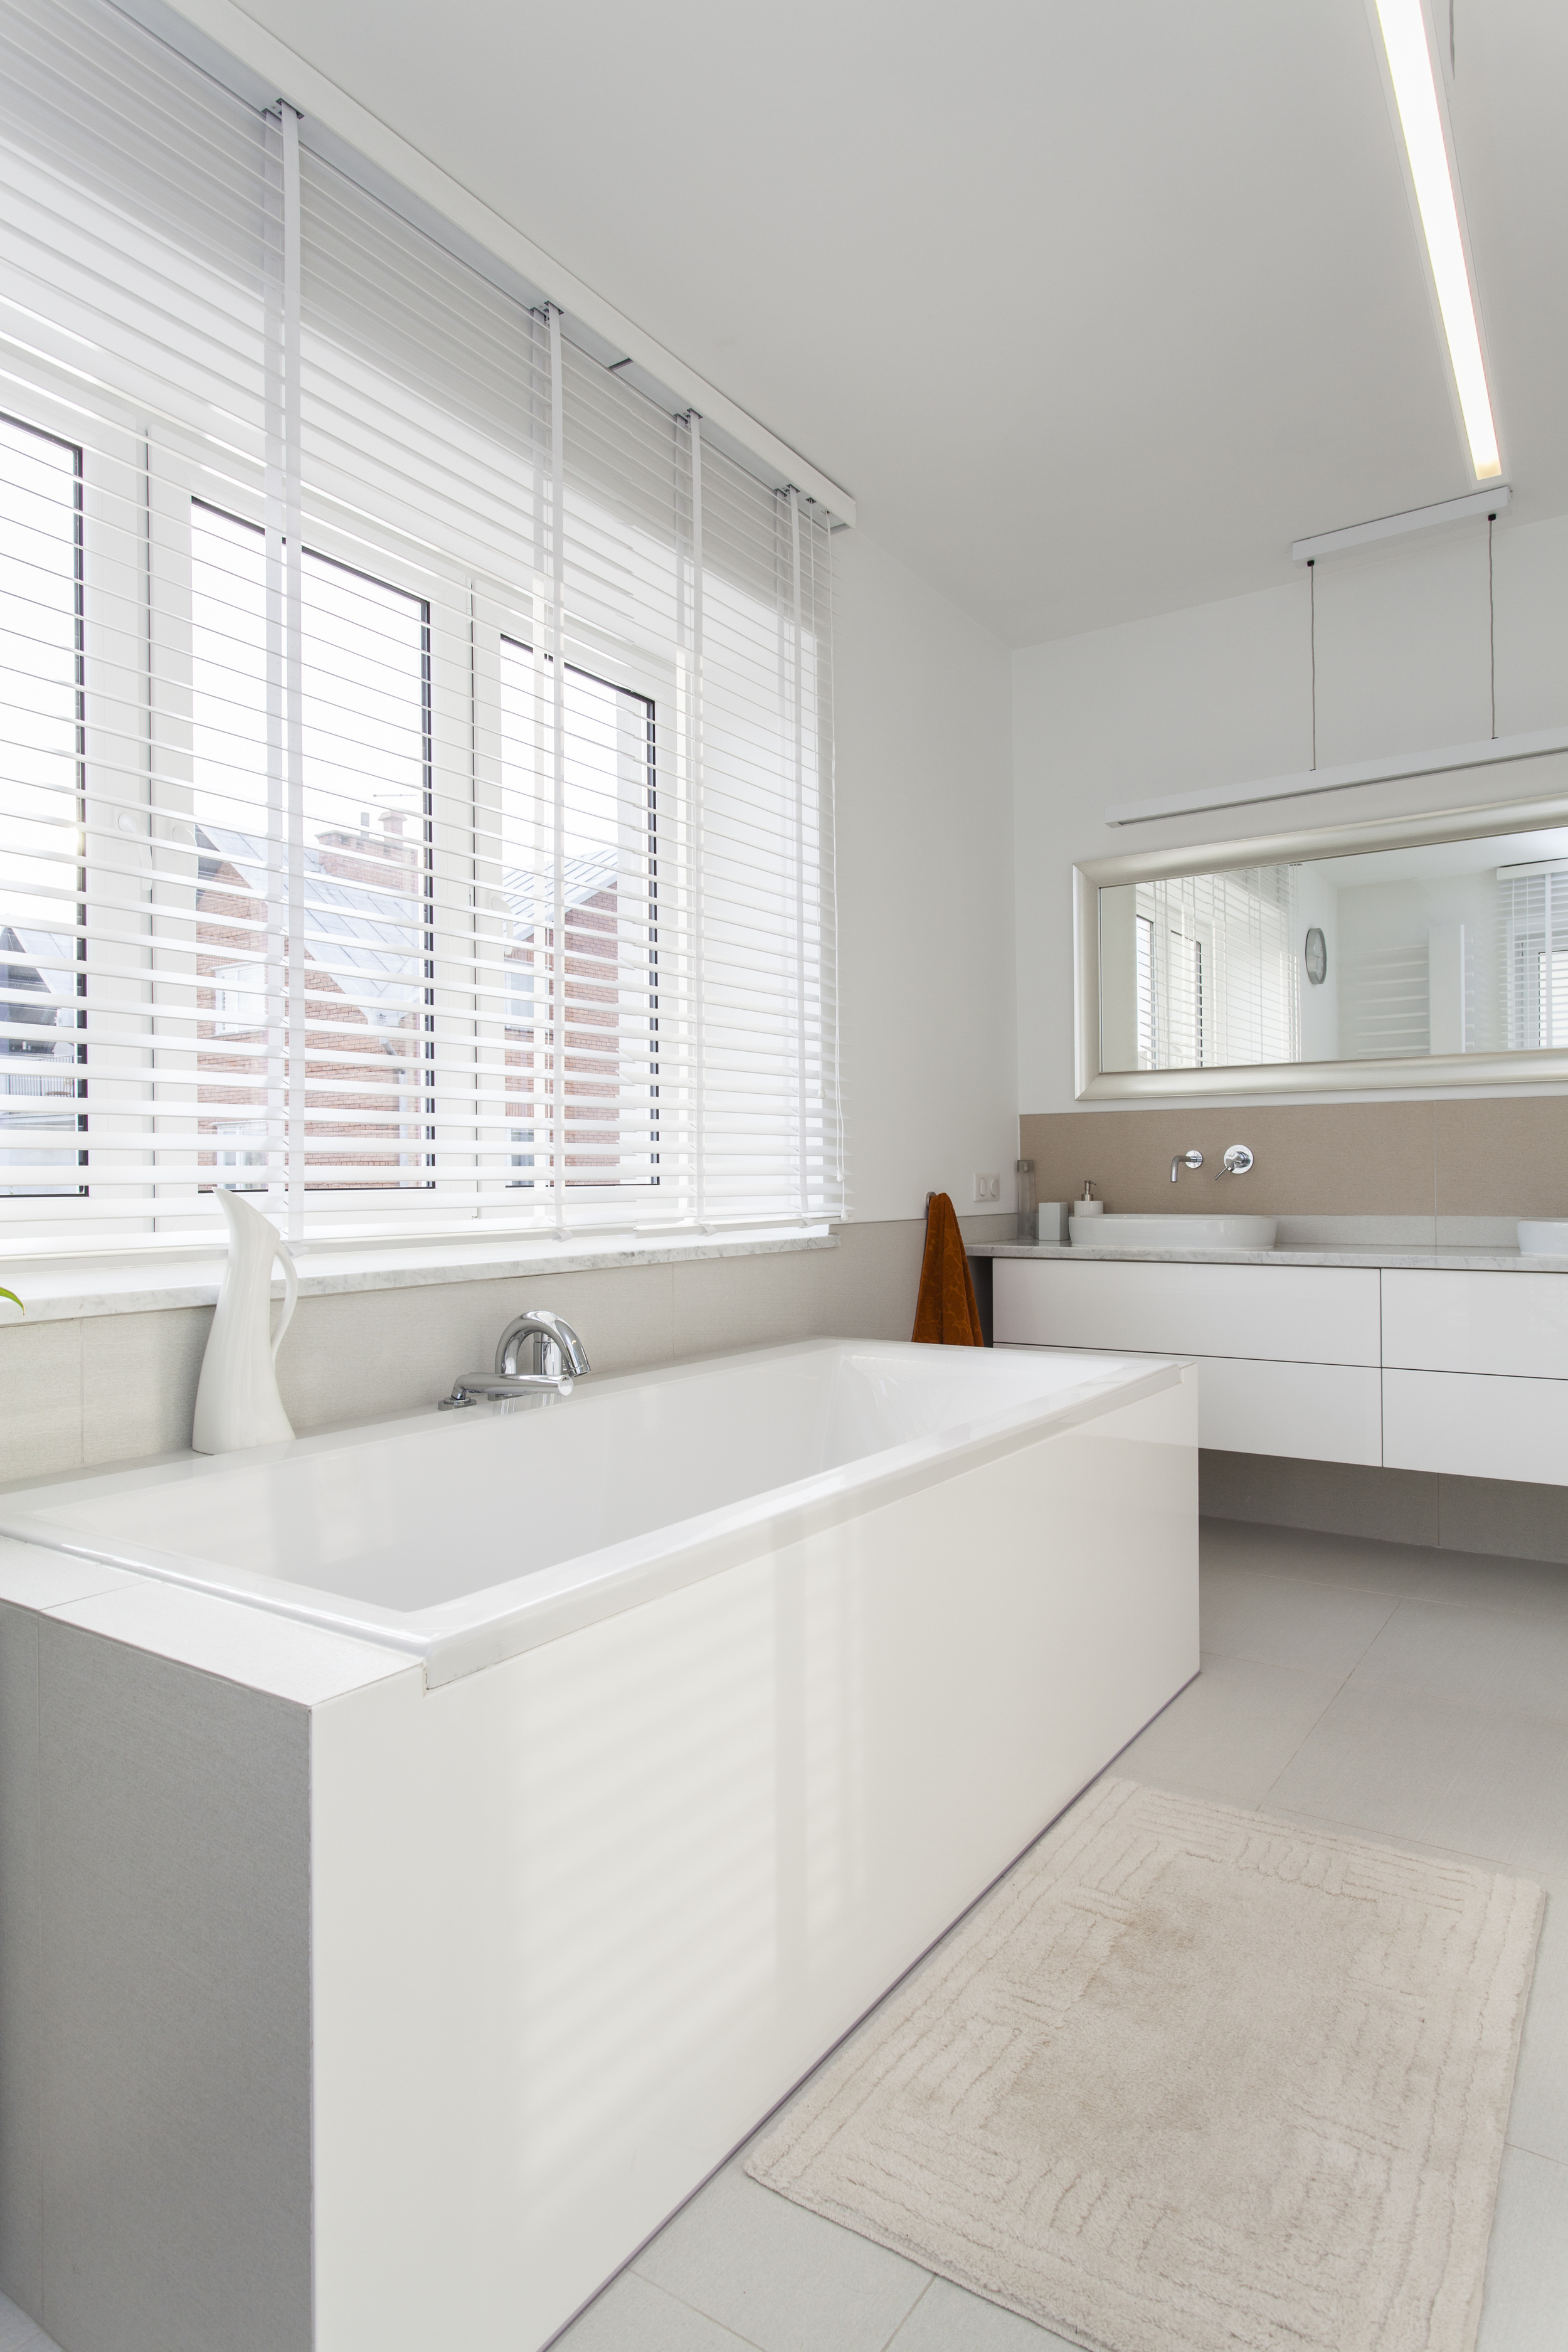 Bathing Shutters and Blinds